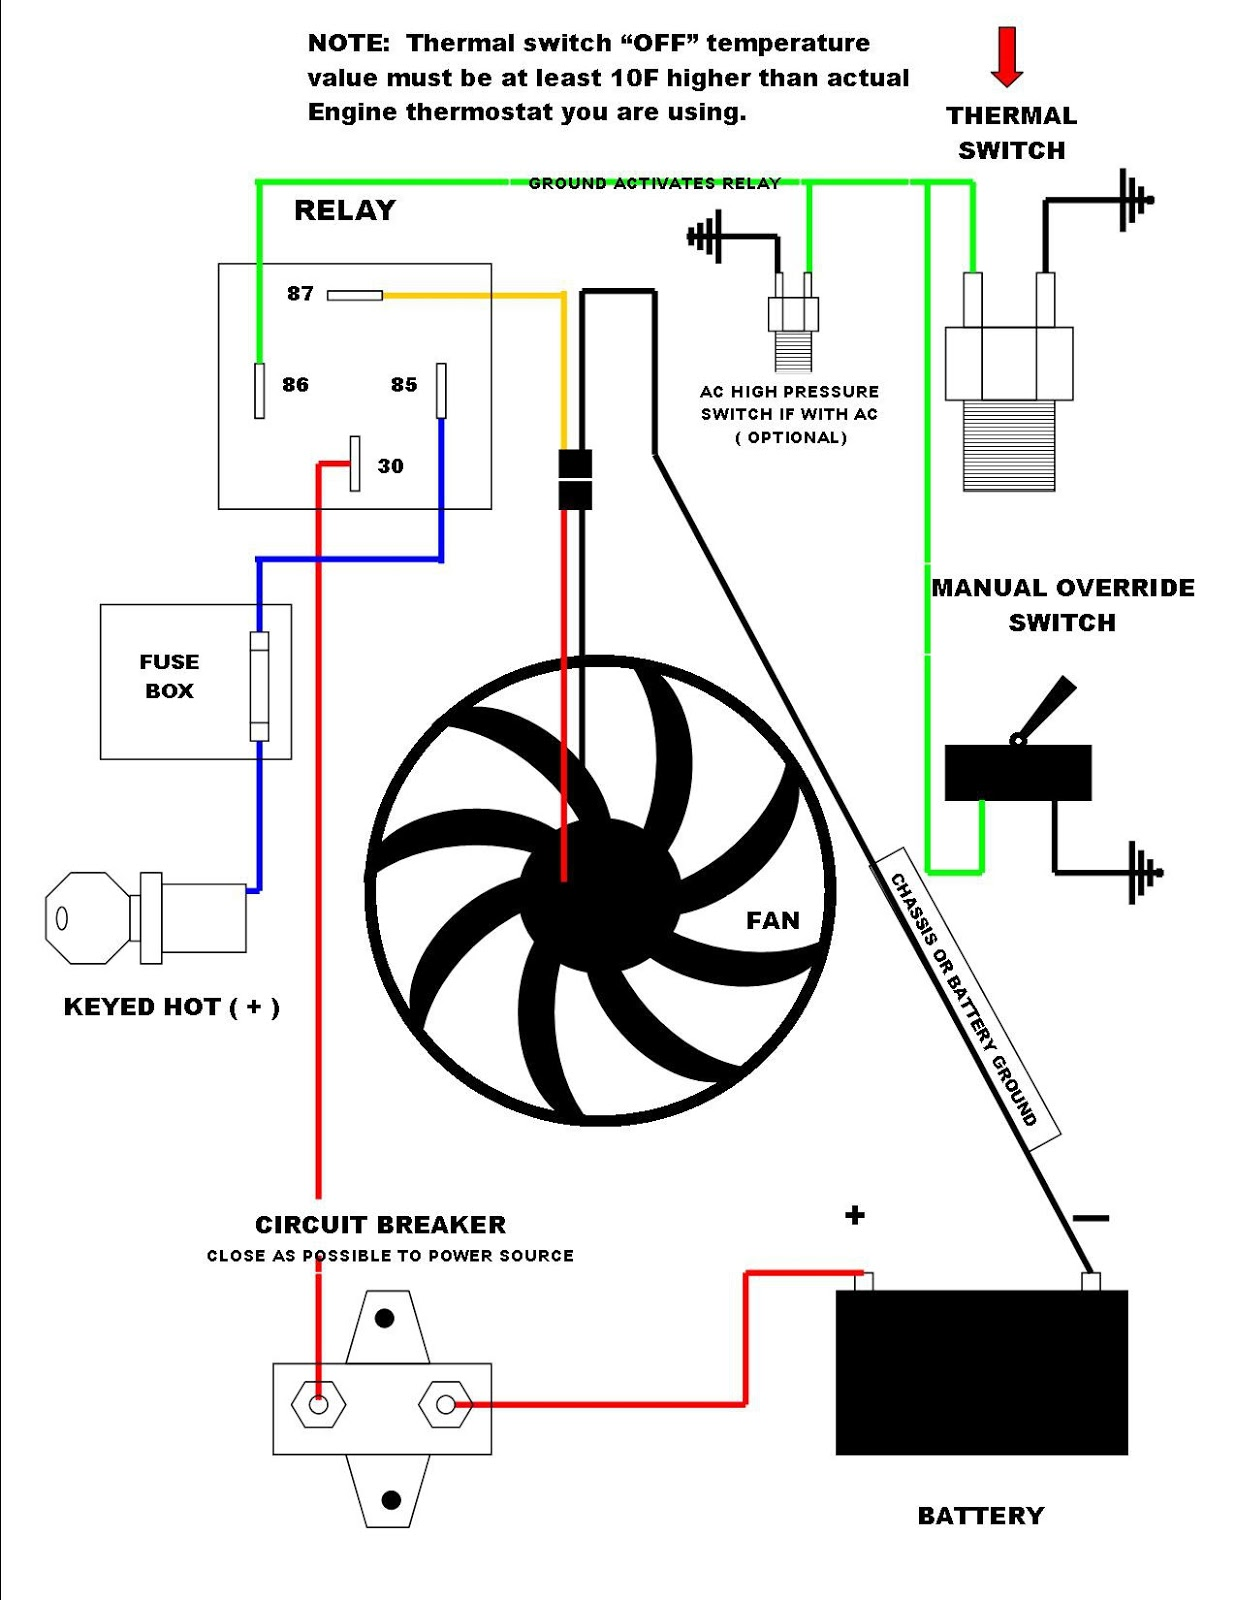 Relay Wiring Diagram Fan from 3.bp.blogspot.com